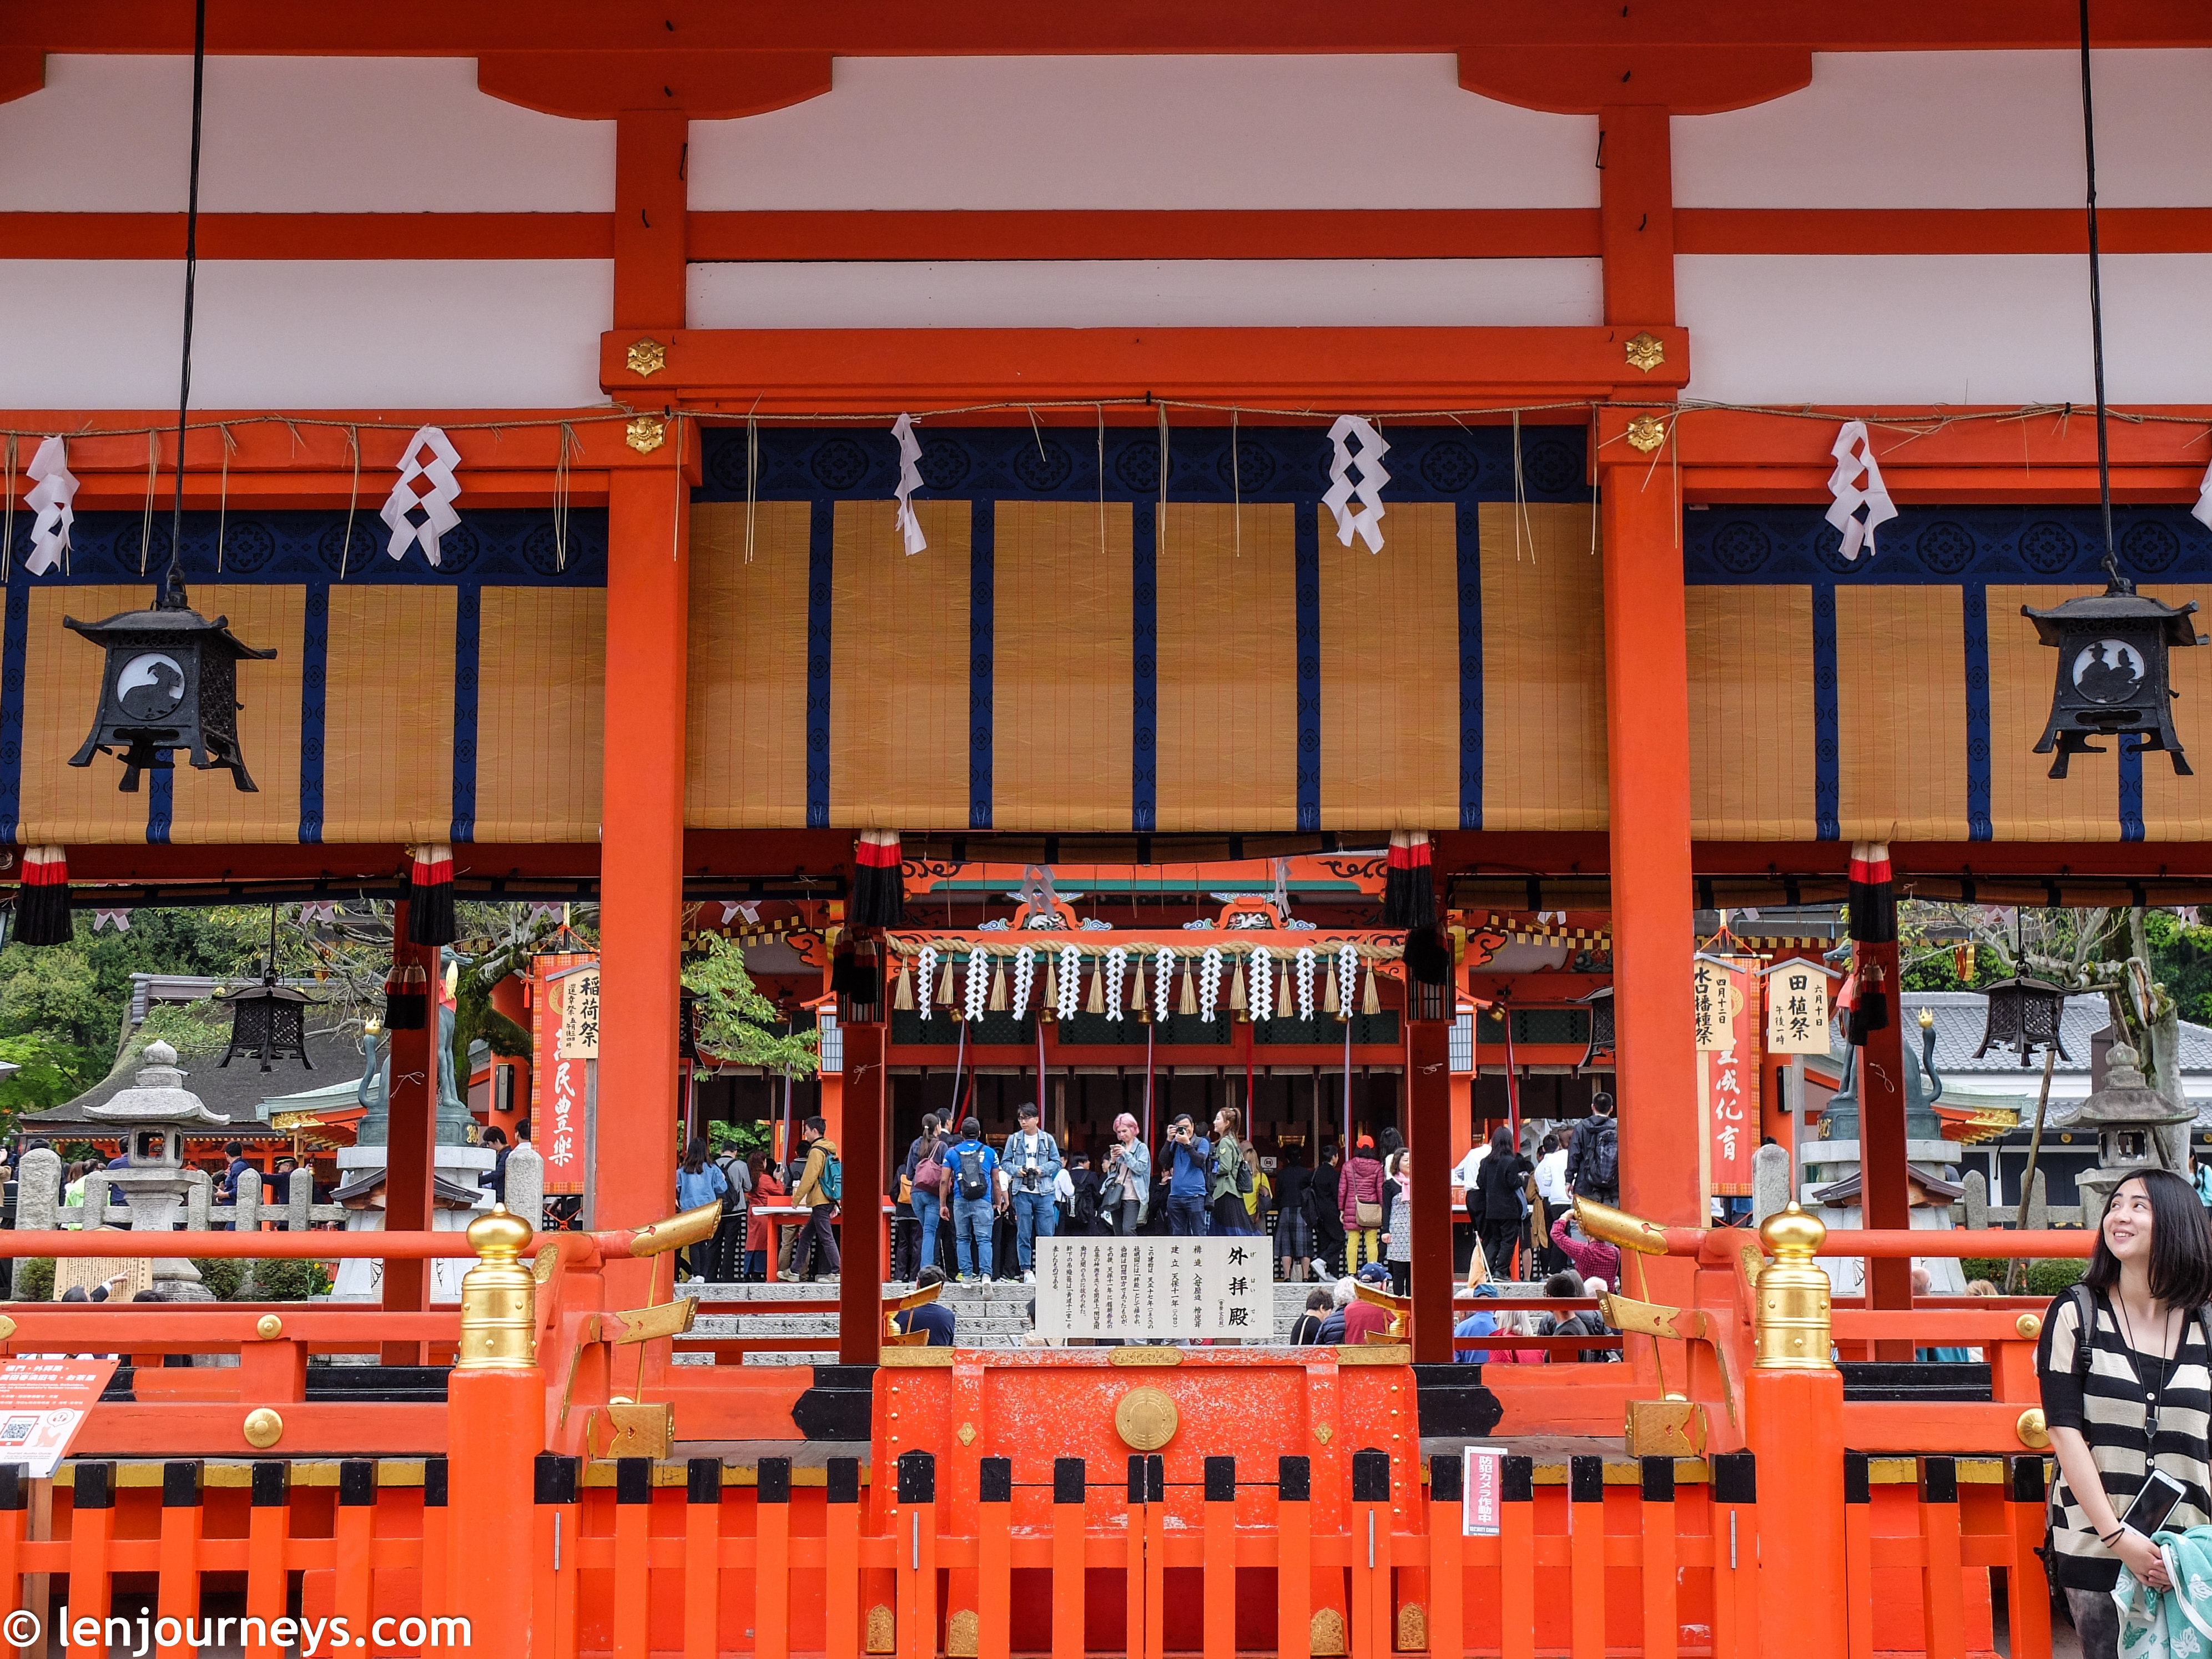 The main sanctum of Fushimi Inari